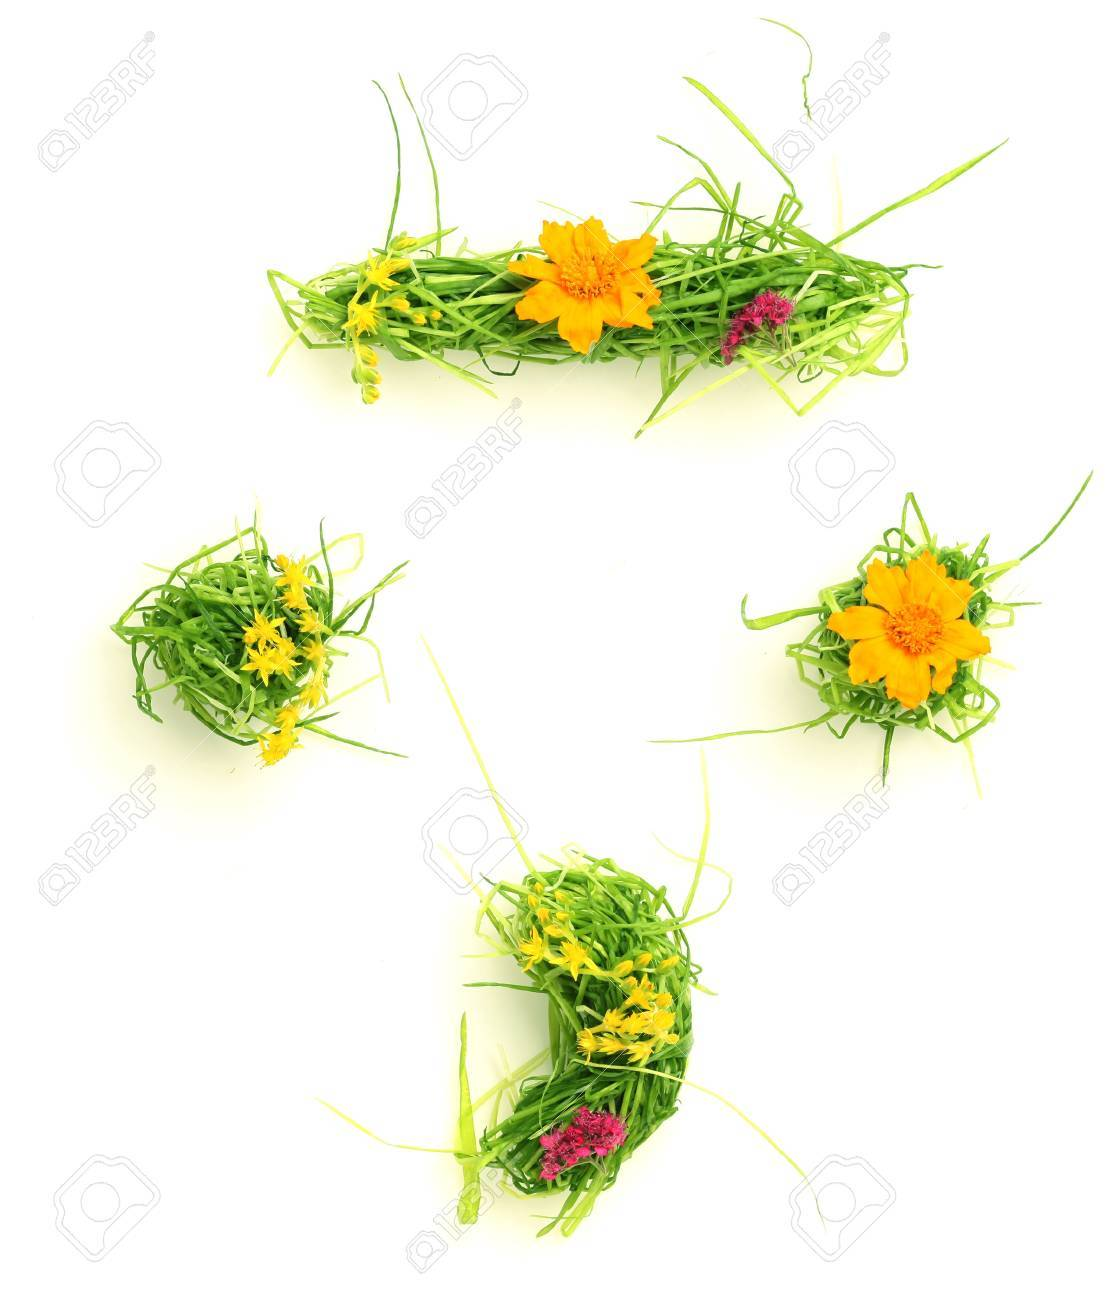 Symbols made of flowers and grass isolated on white Stock Photo - 9448101